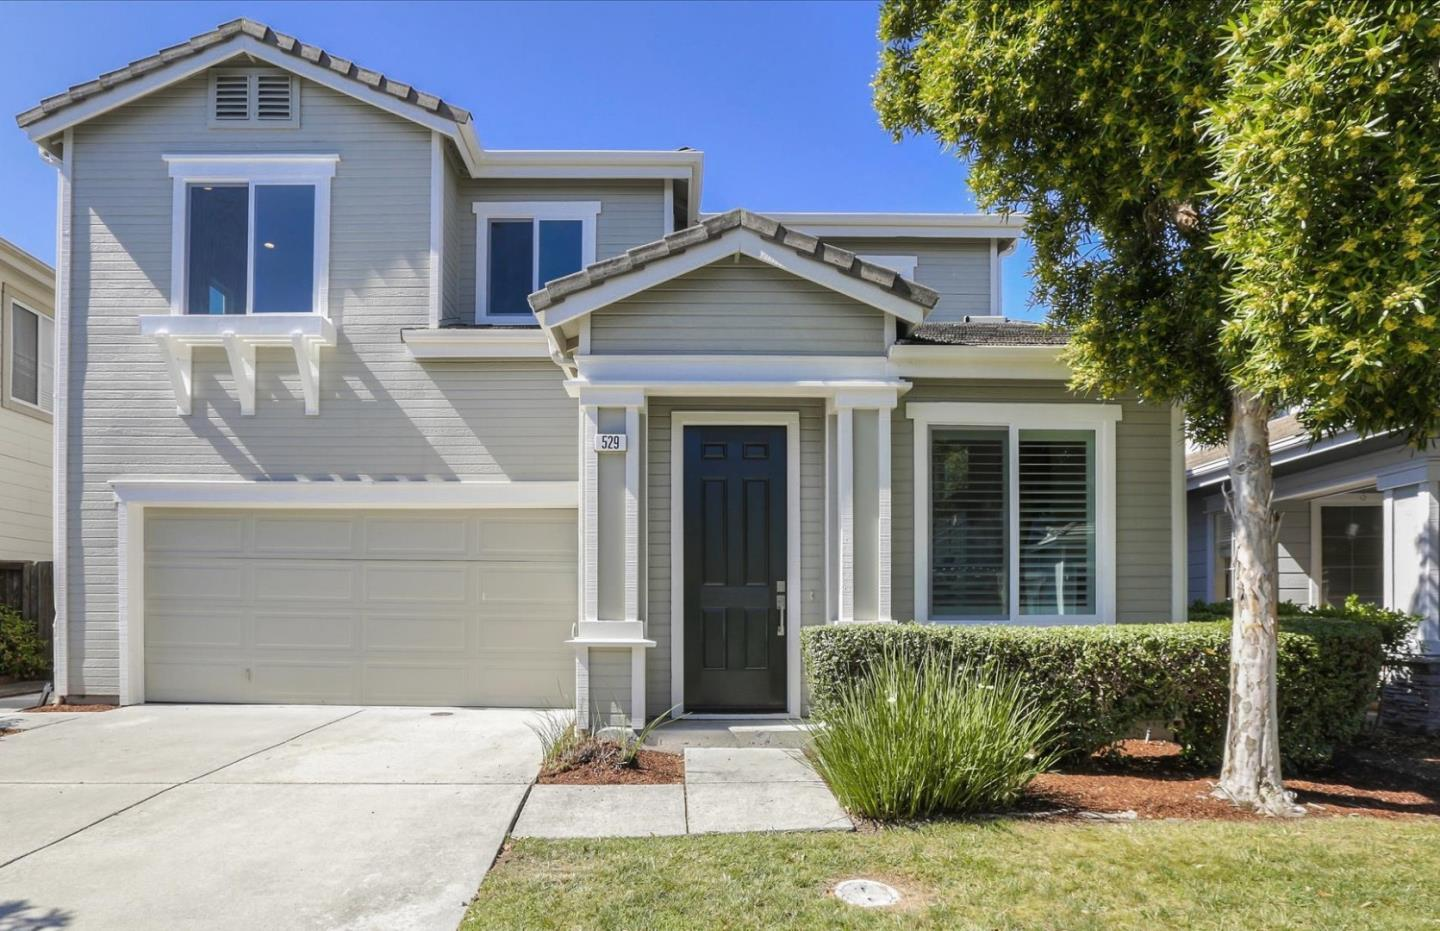 529 OSPREY DR, REDWOOD SHORES, CA 94065